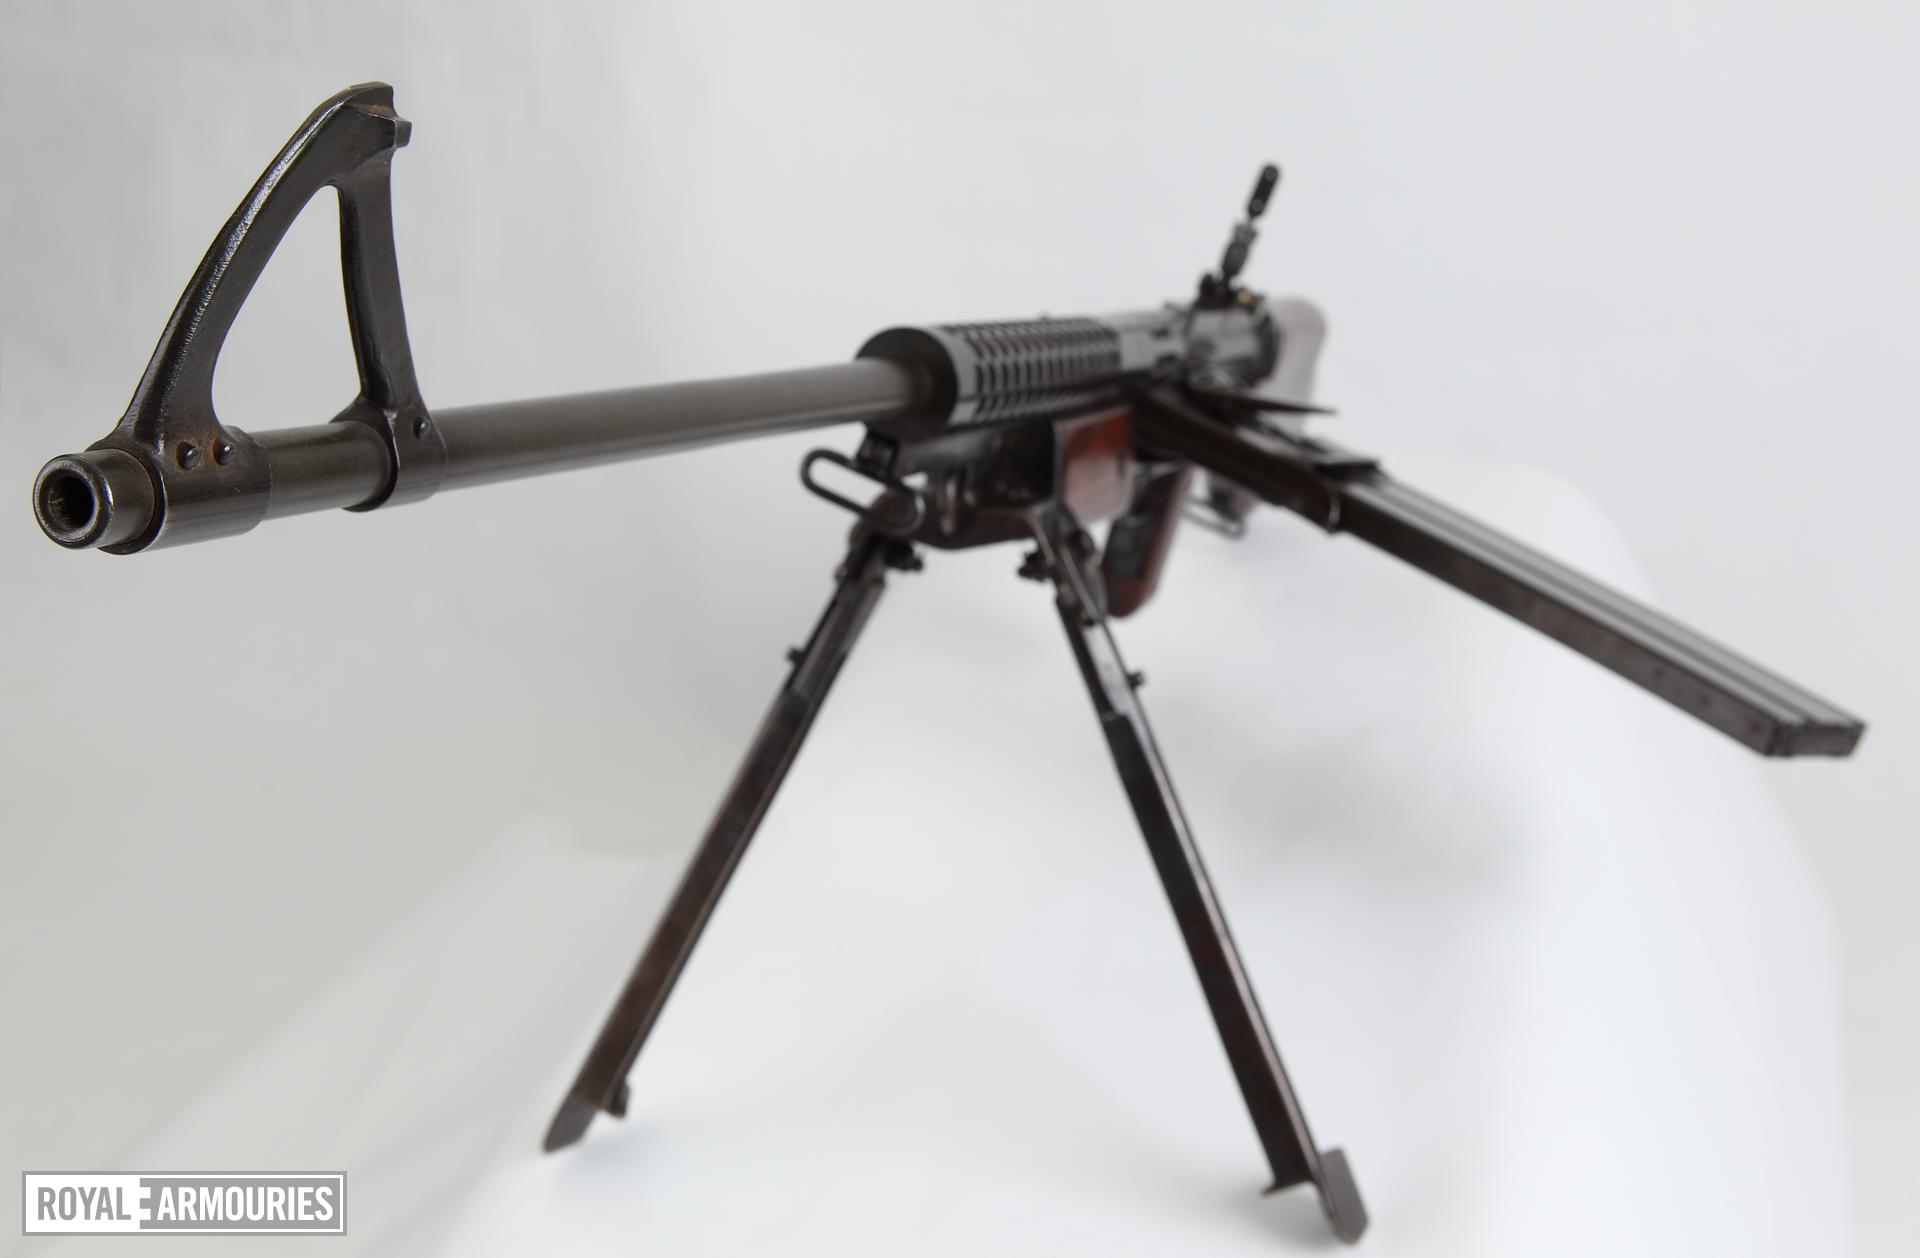 Centrefire automatic light machine gun - Johnson Model 1941